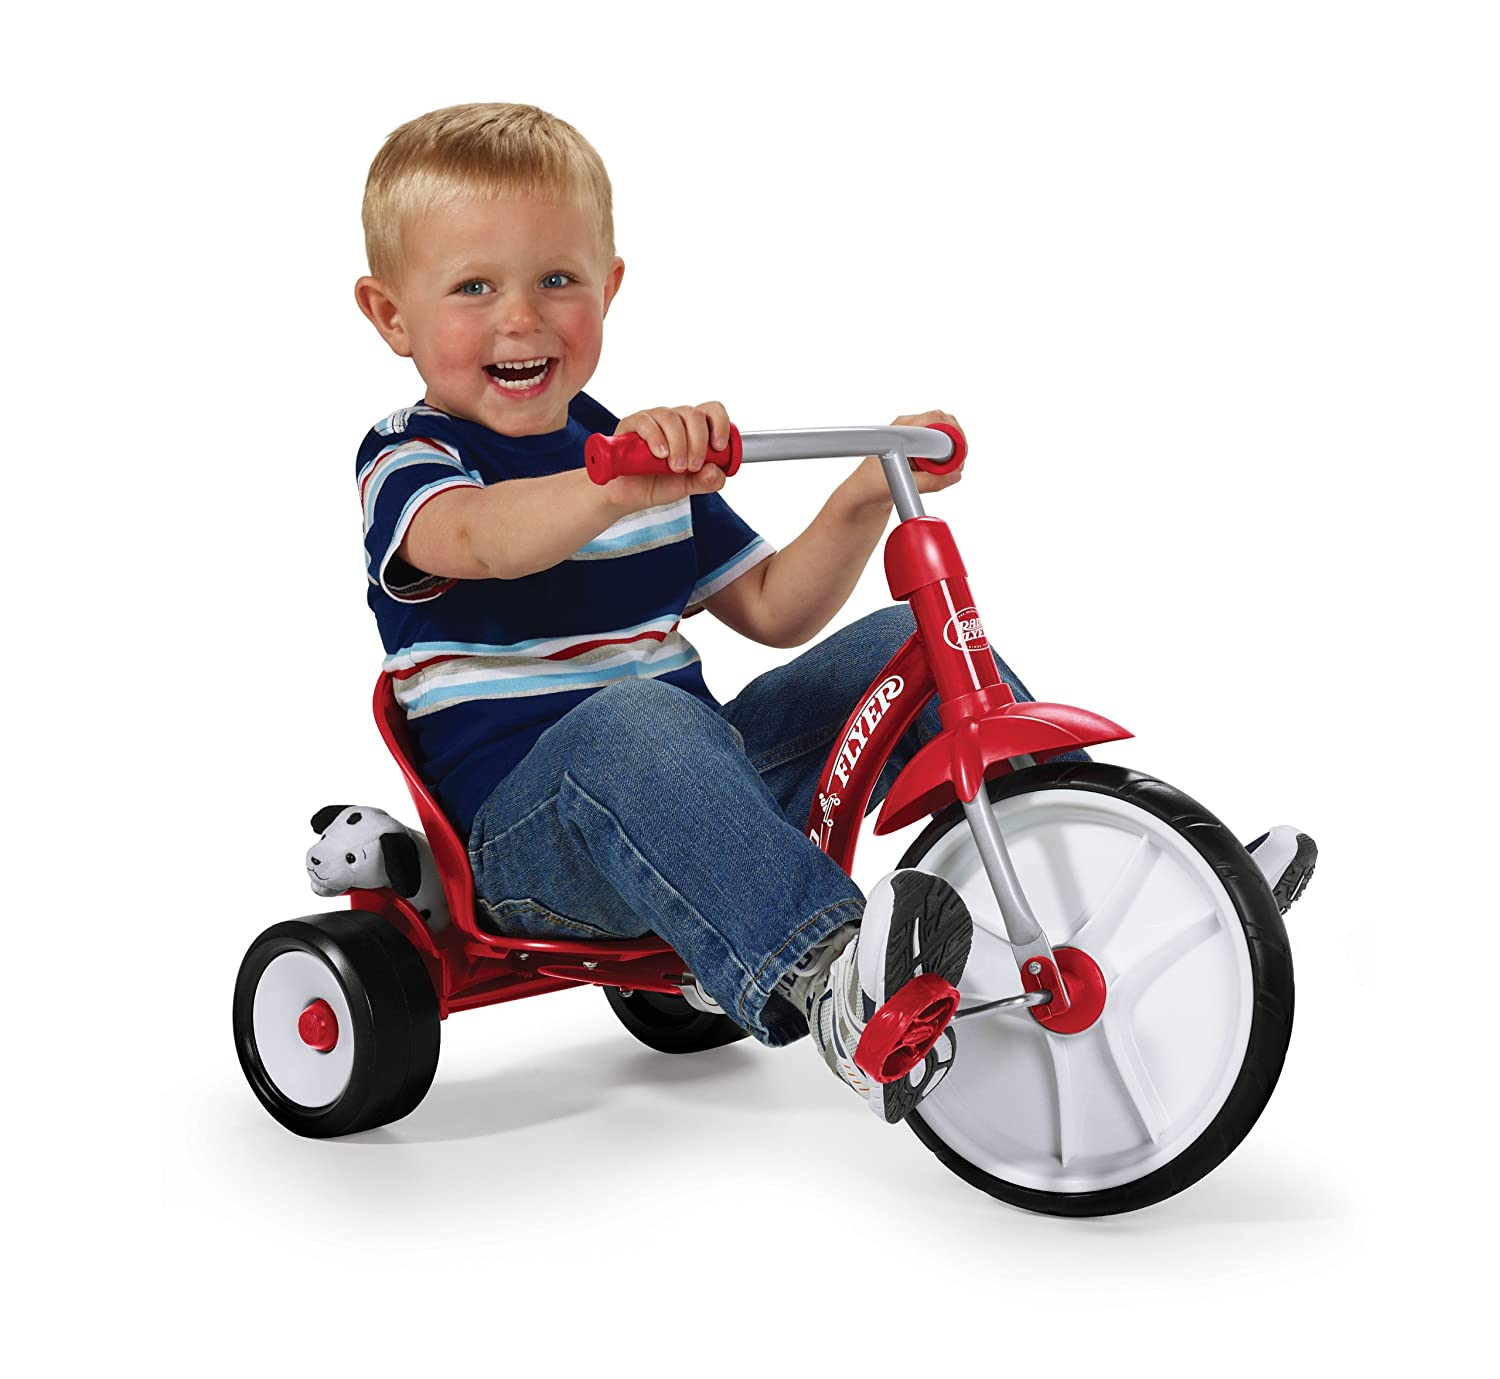 Shop for Kids' Tricycles in Kids Bikes. Buy products such as Radio Flyer Big Flyer Sport Trike, Radio Flyer 4-in-1 Stroll N Trike at Walmart and save.